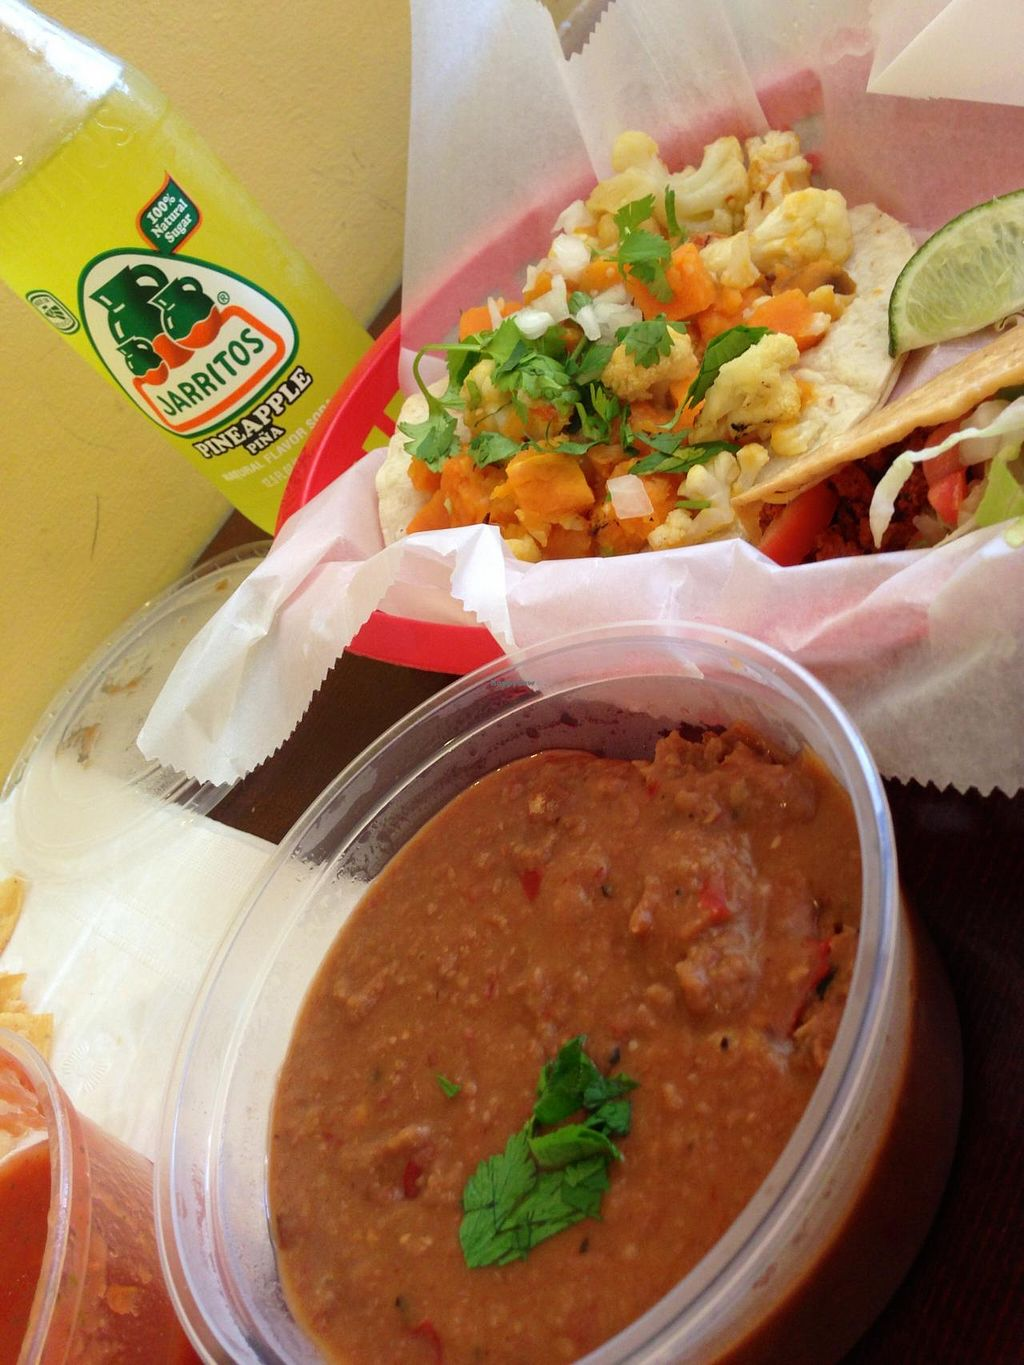 "Photo of El Burro - Northside  by <a href=""/members/profile/jessgrif"">jessgrif</a> <br/>Sweet potato & cauliflower taco, soy chorizo taco, refried beans <br/> June 22, 2014  - <a href='/contact/abuse/image/43633/72533'>Report</a>"